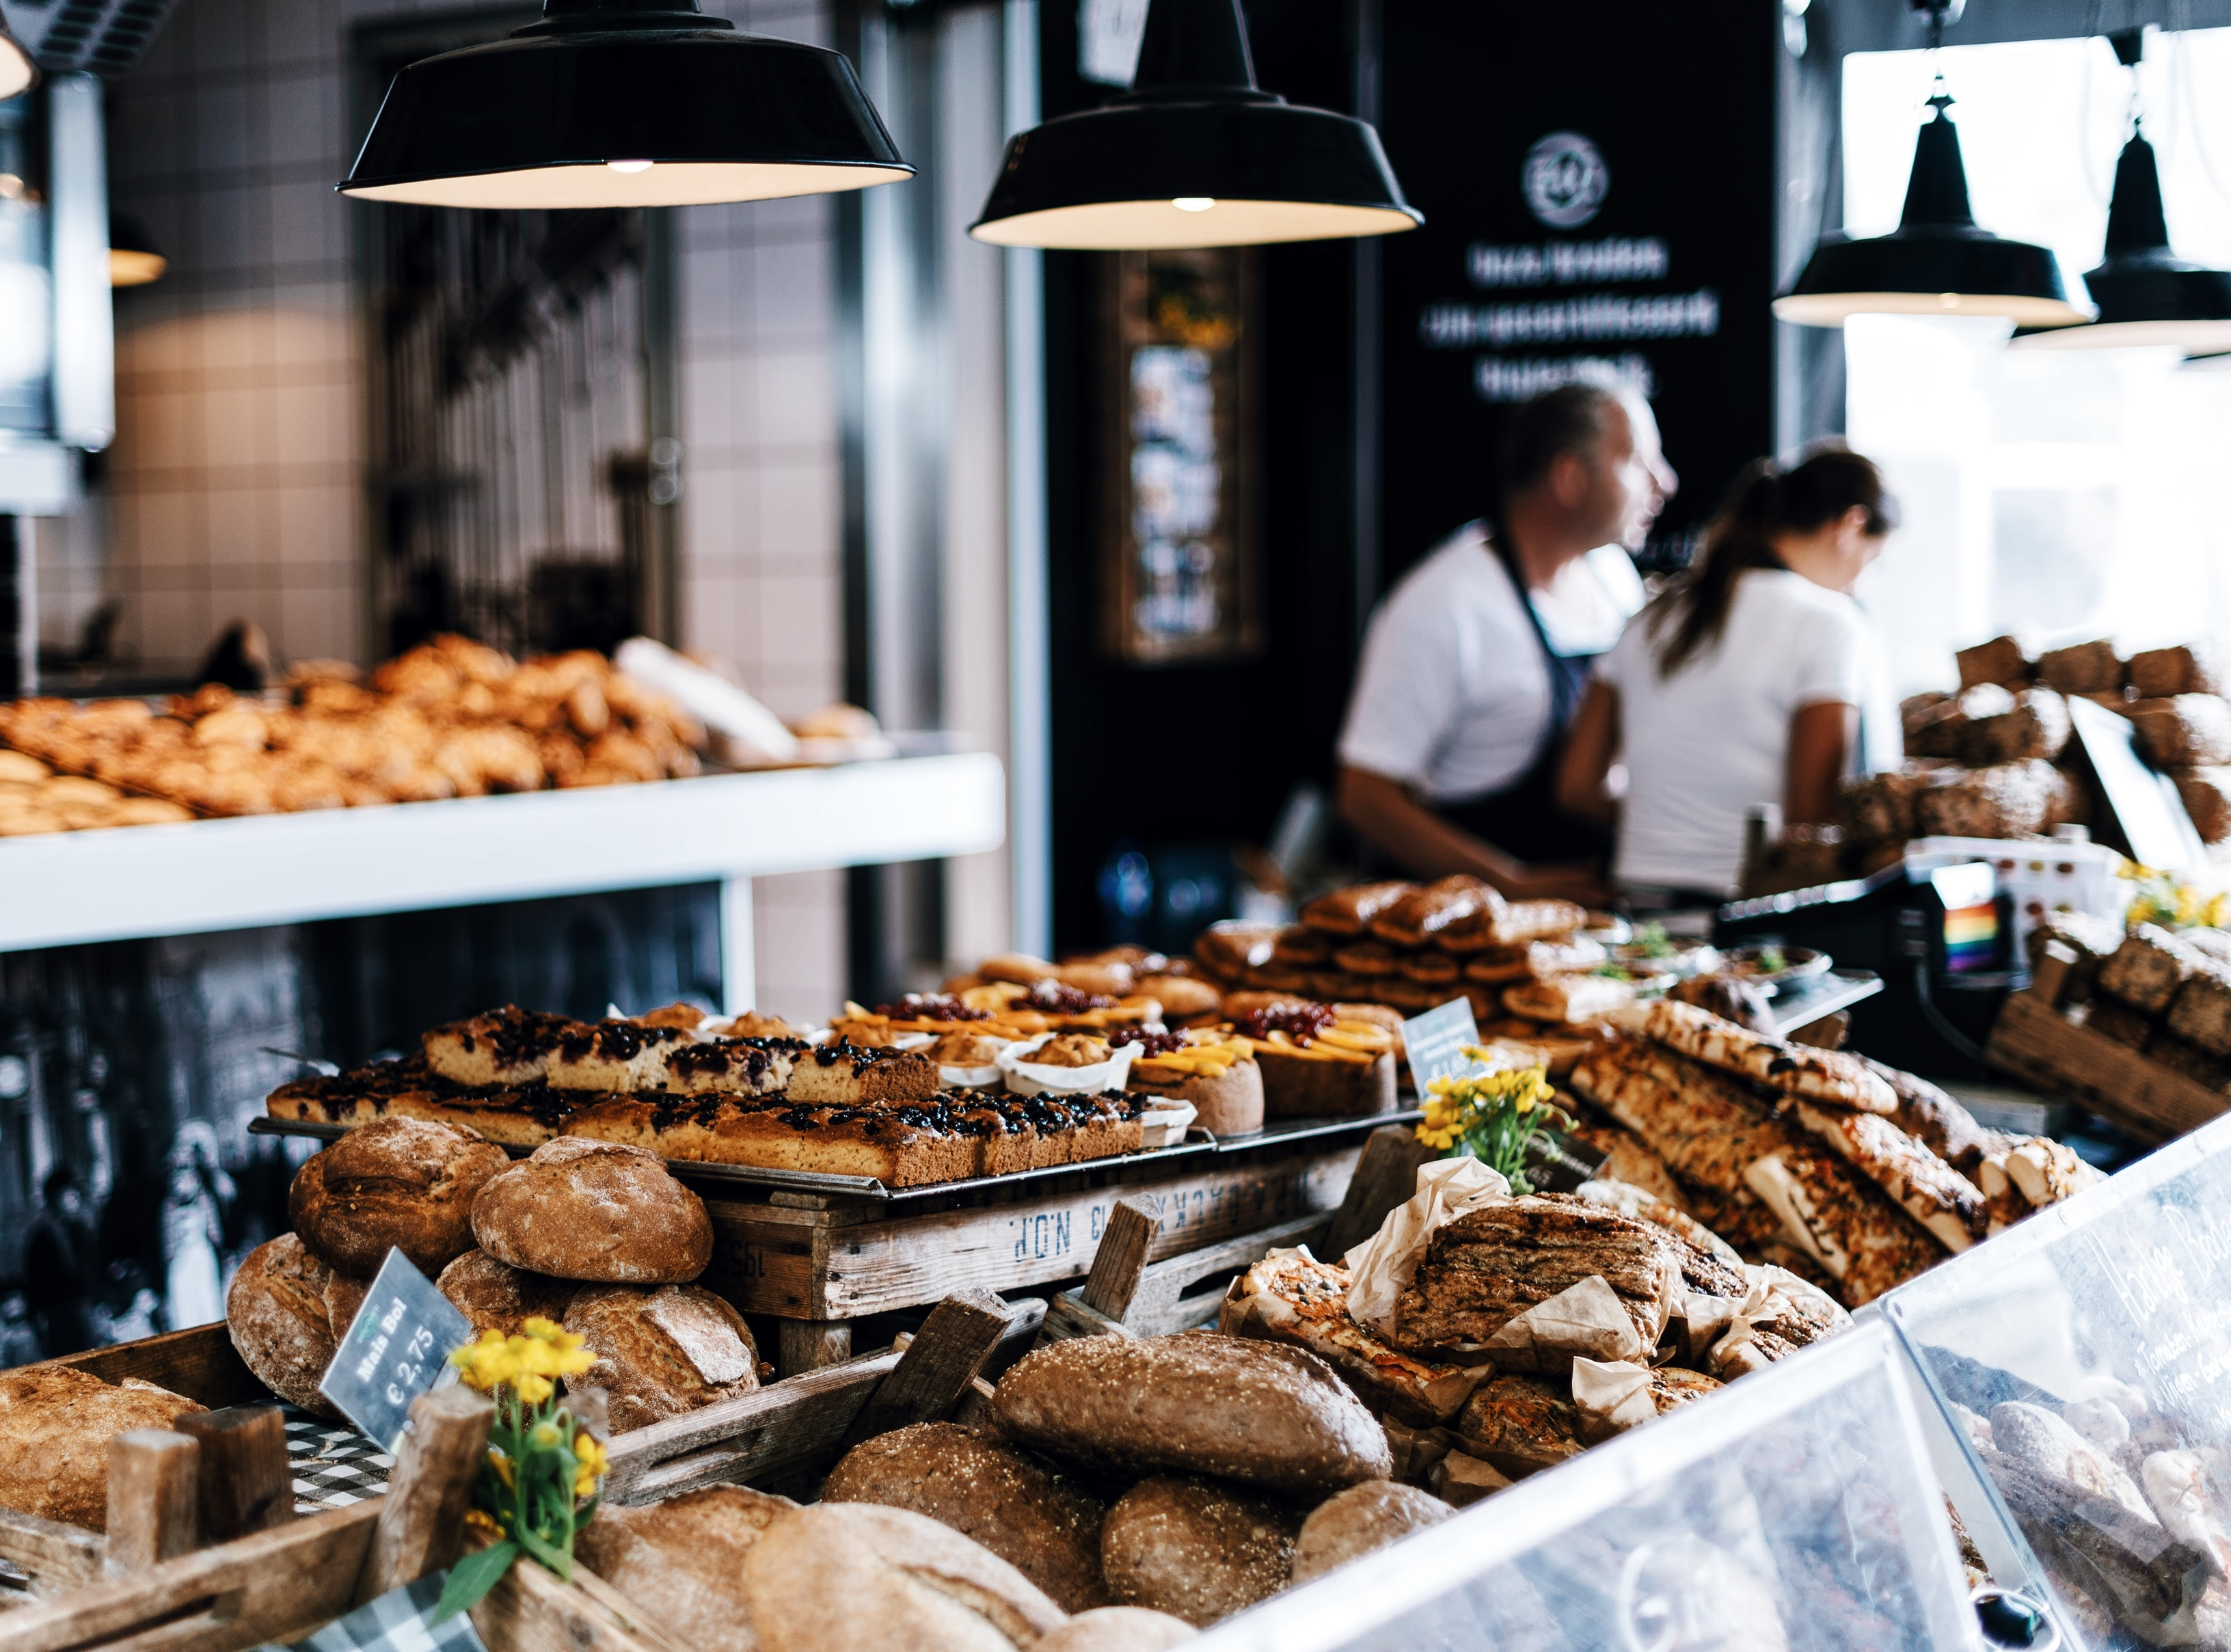 An assortment of pastries and breads on display at a bakery.